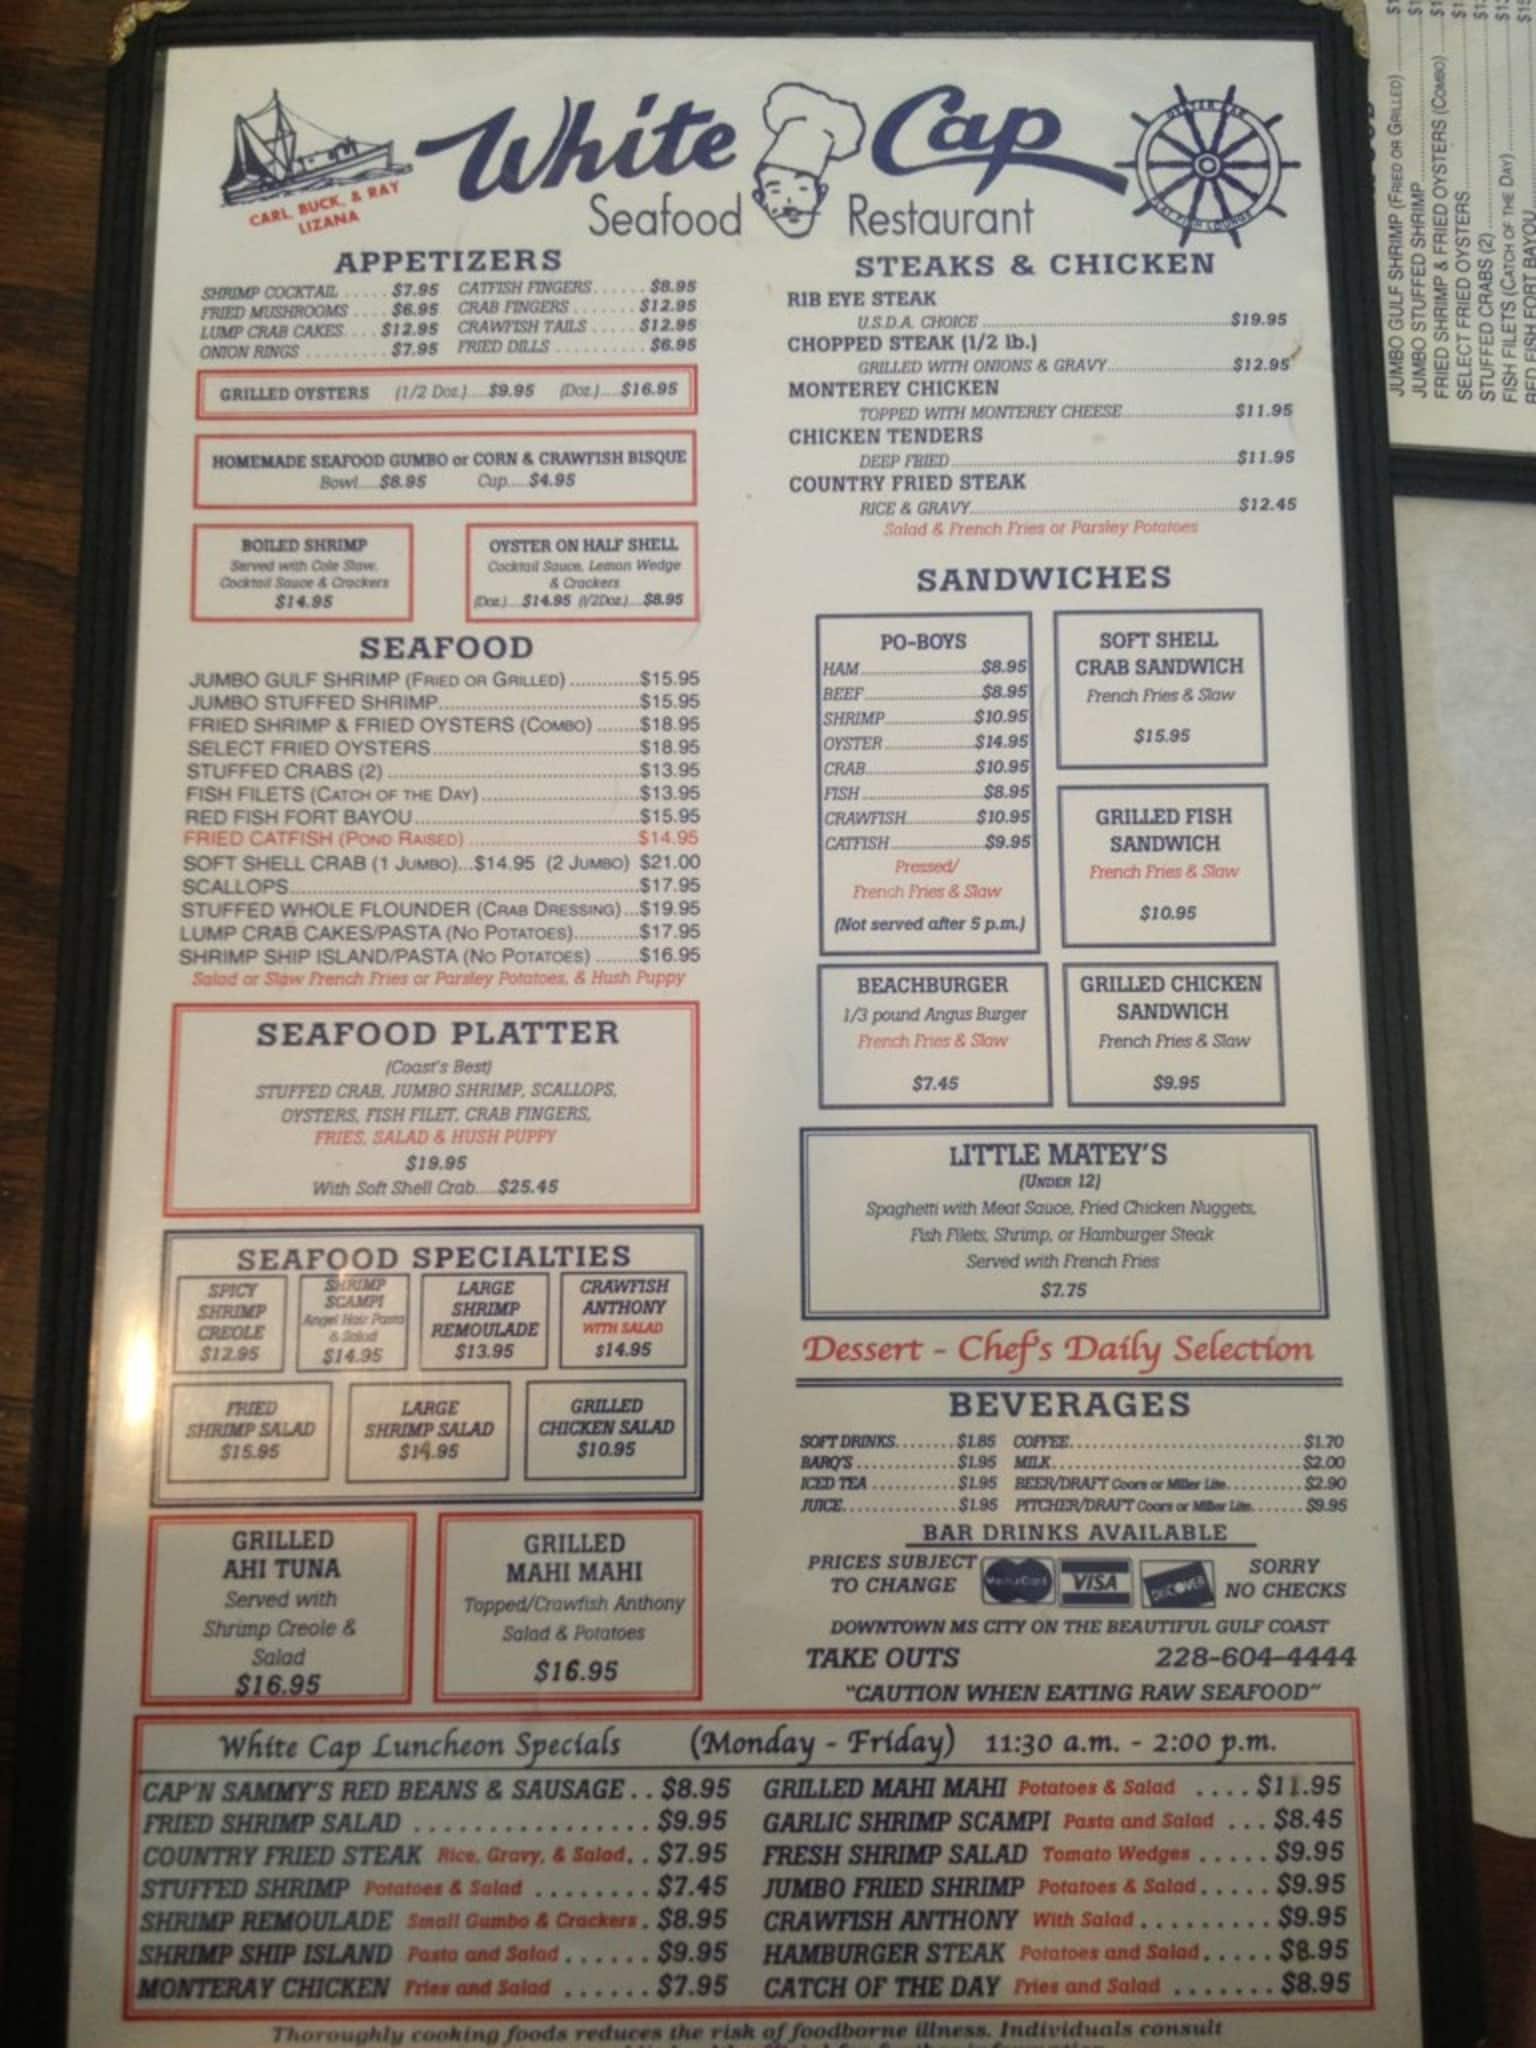 White Cap Seafood Restaurant Gulfport Menu